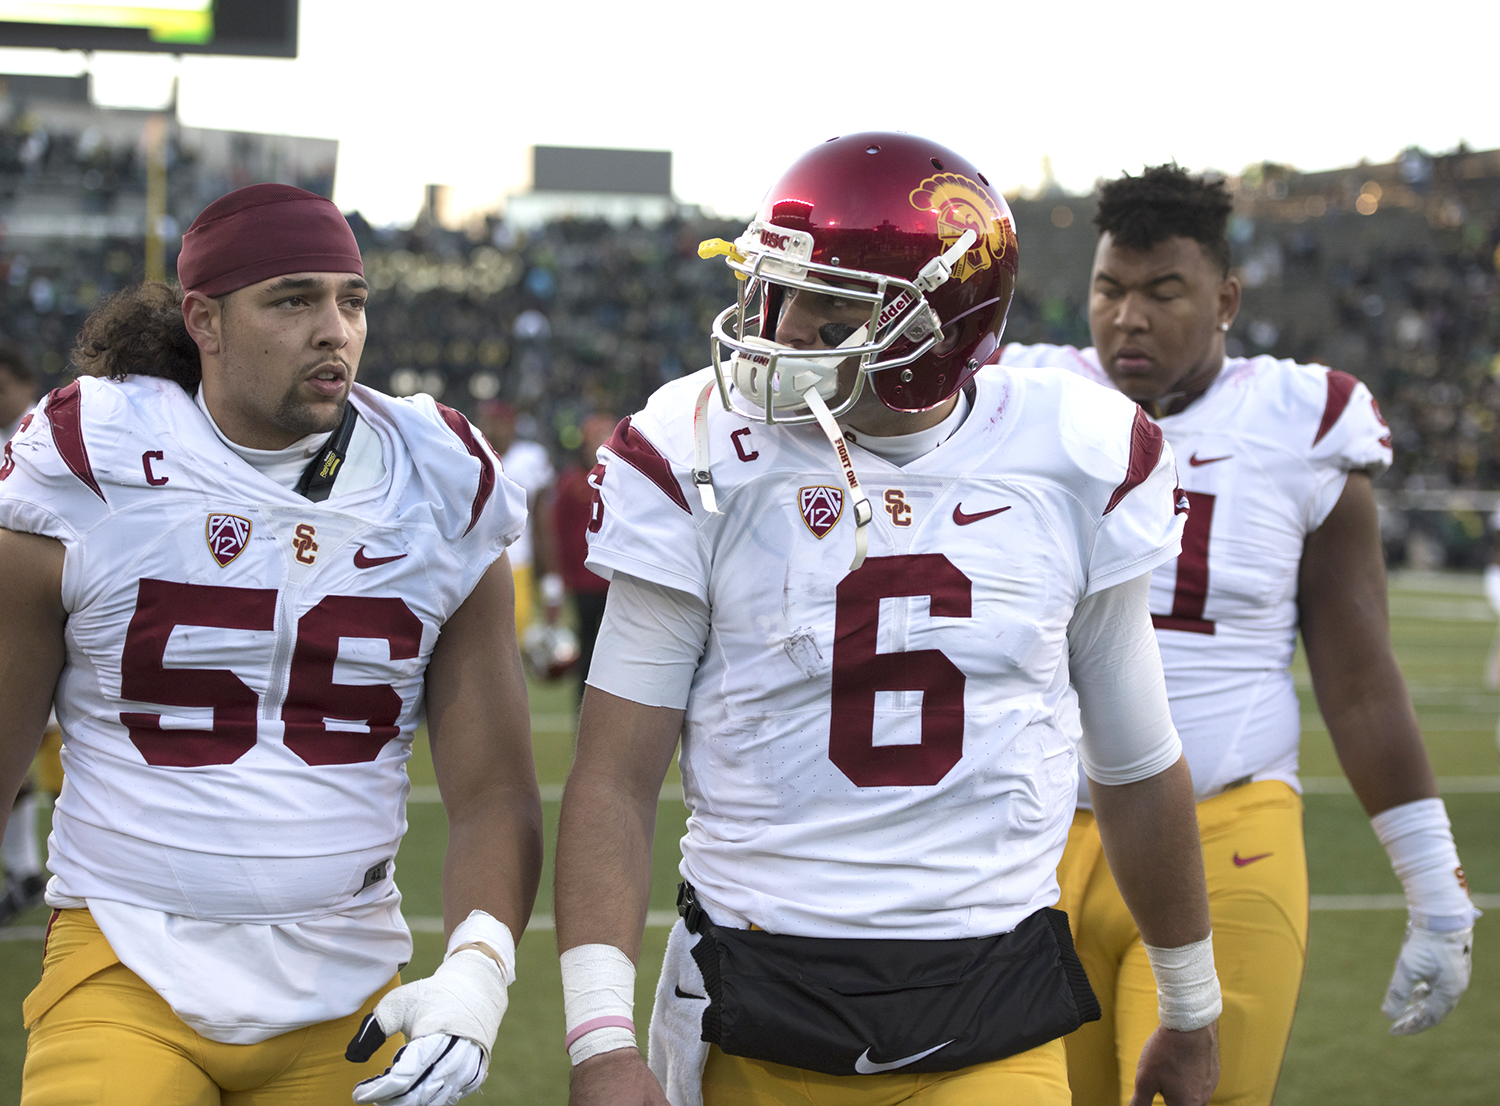 All or nothing · This year, the annual rivalry game between the Trojans and the Bruins will decide the Pac-12 South champion. The winner will face Stanford in the Pac-12 championship game. - Mariya Dondonyan | Daily Trojan